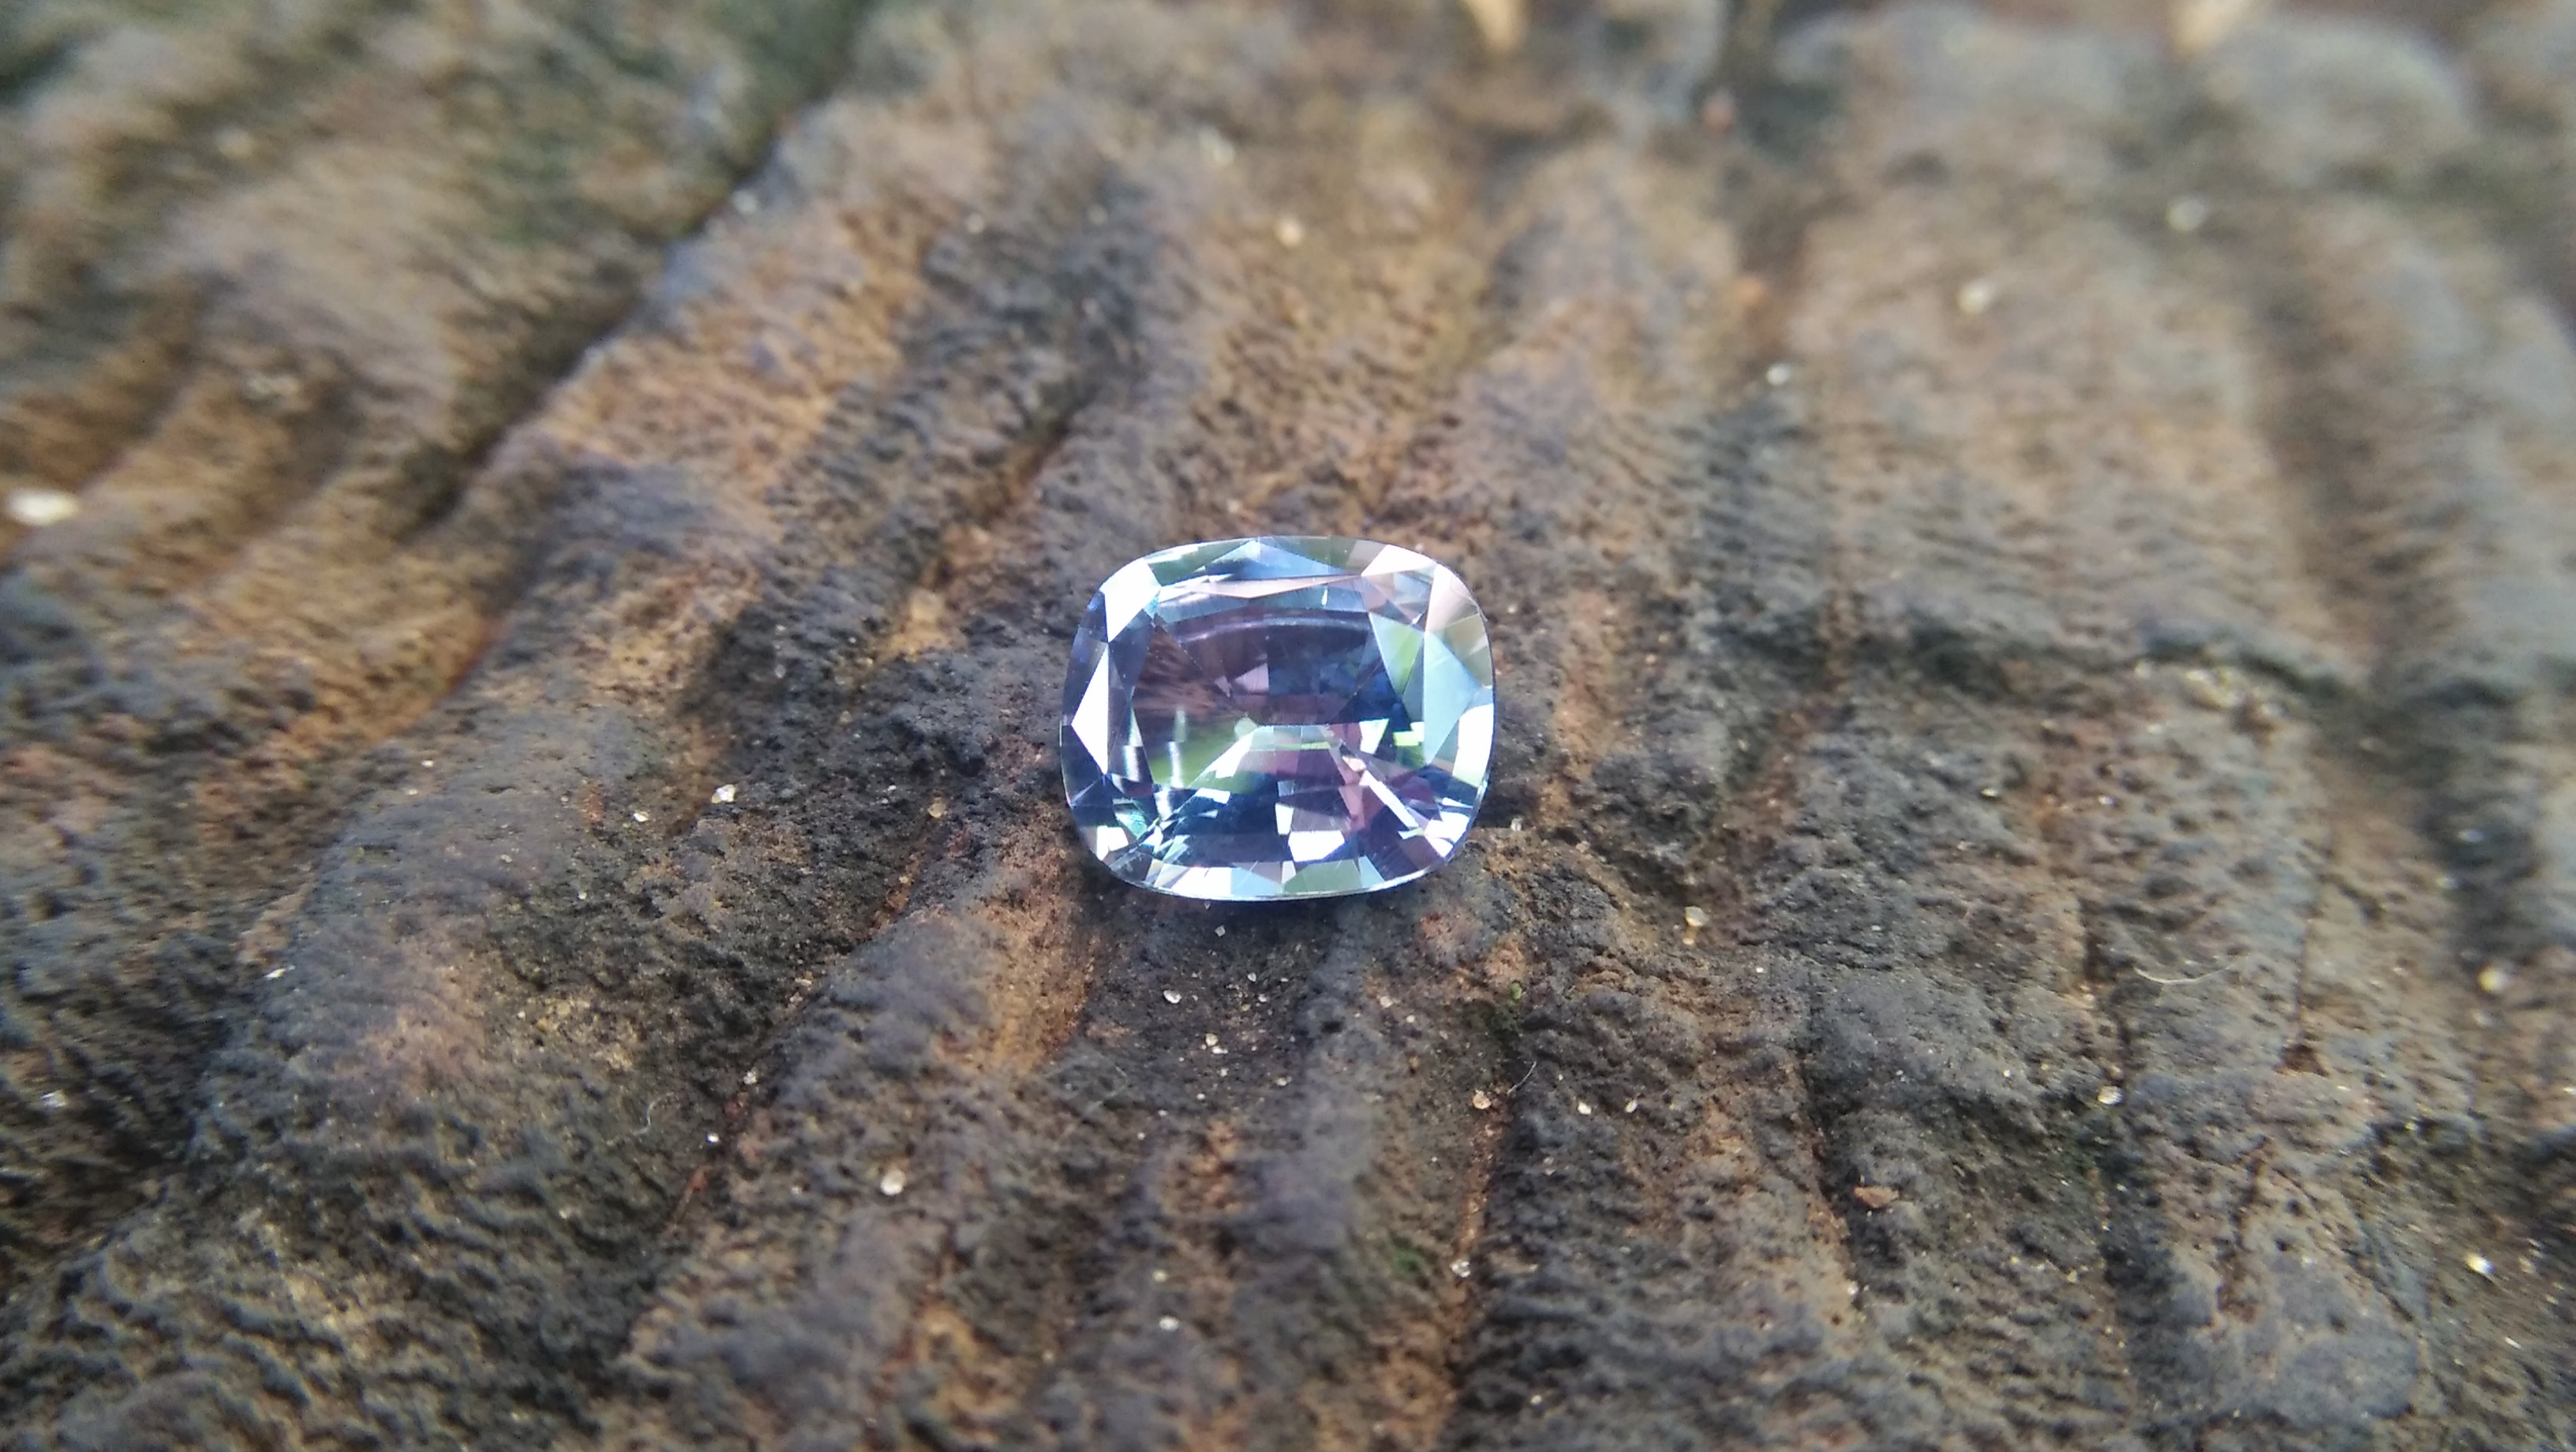 NATURAL BLUEISH WHITE SAPPHIRE Shape : Cution Dimension : 7.2mm x 6mm x 3.5mm Weight : 1.35cts Clarity : Clean Colour : Blueish white Transparency : Transparent Origin : Sri Lanka Treatment : Unheated/ Natural